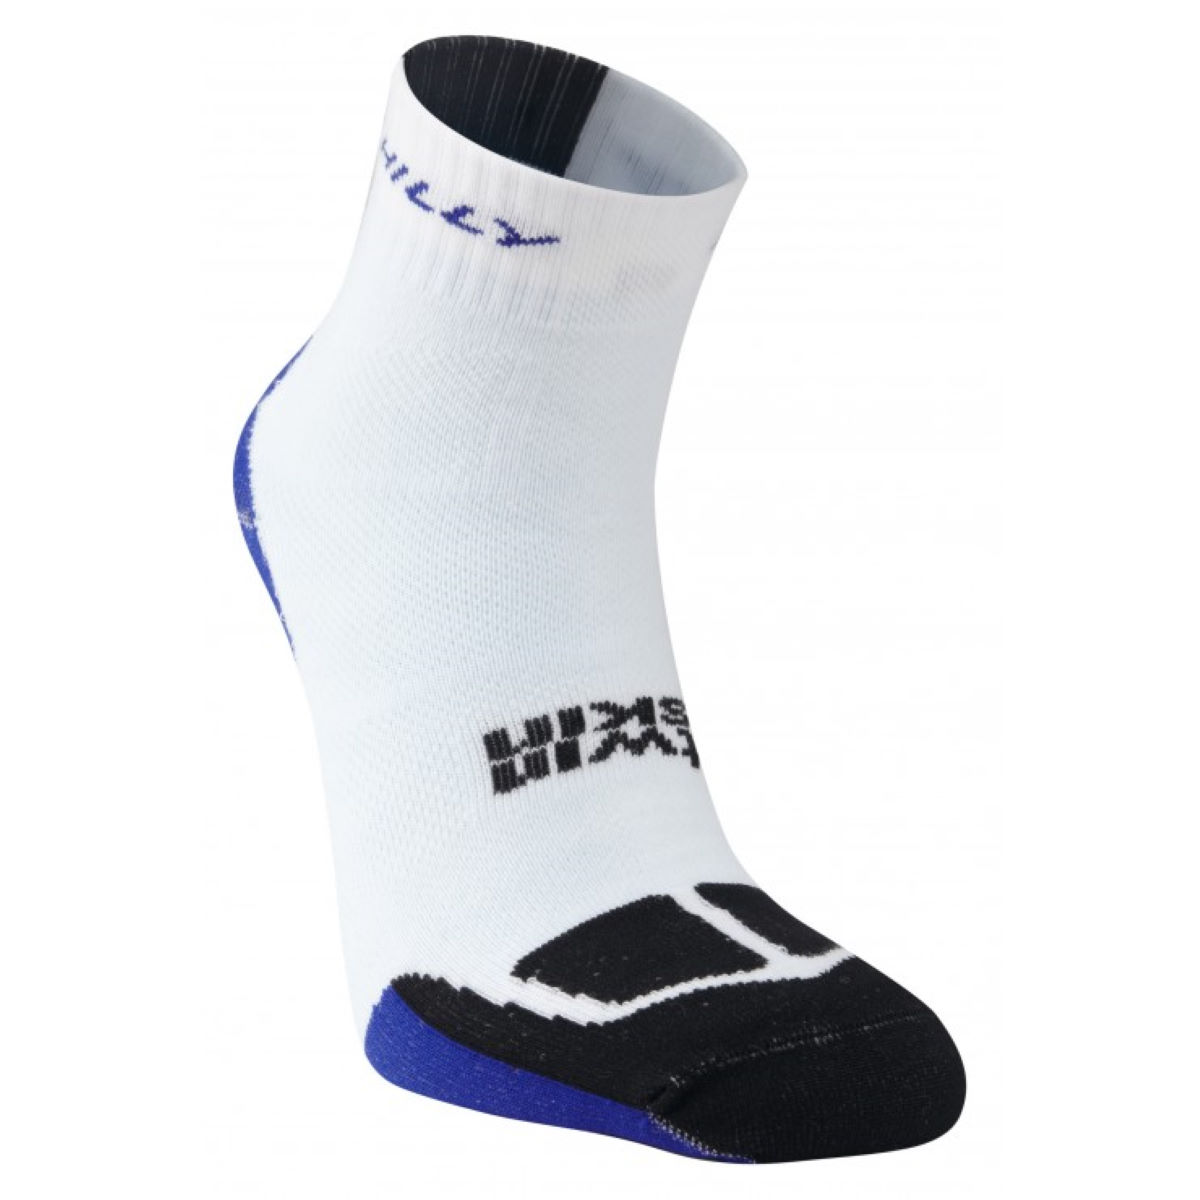 Chaussettes Hilly Twin Skin PE14 - M White/Blue/Black  Chaussettes